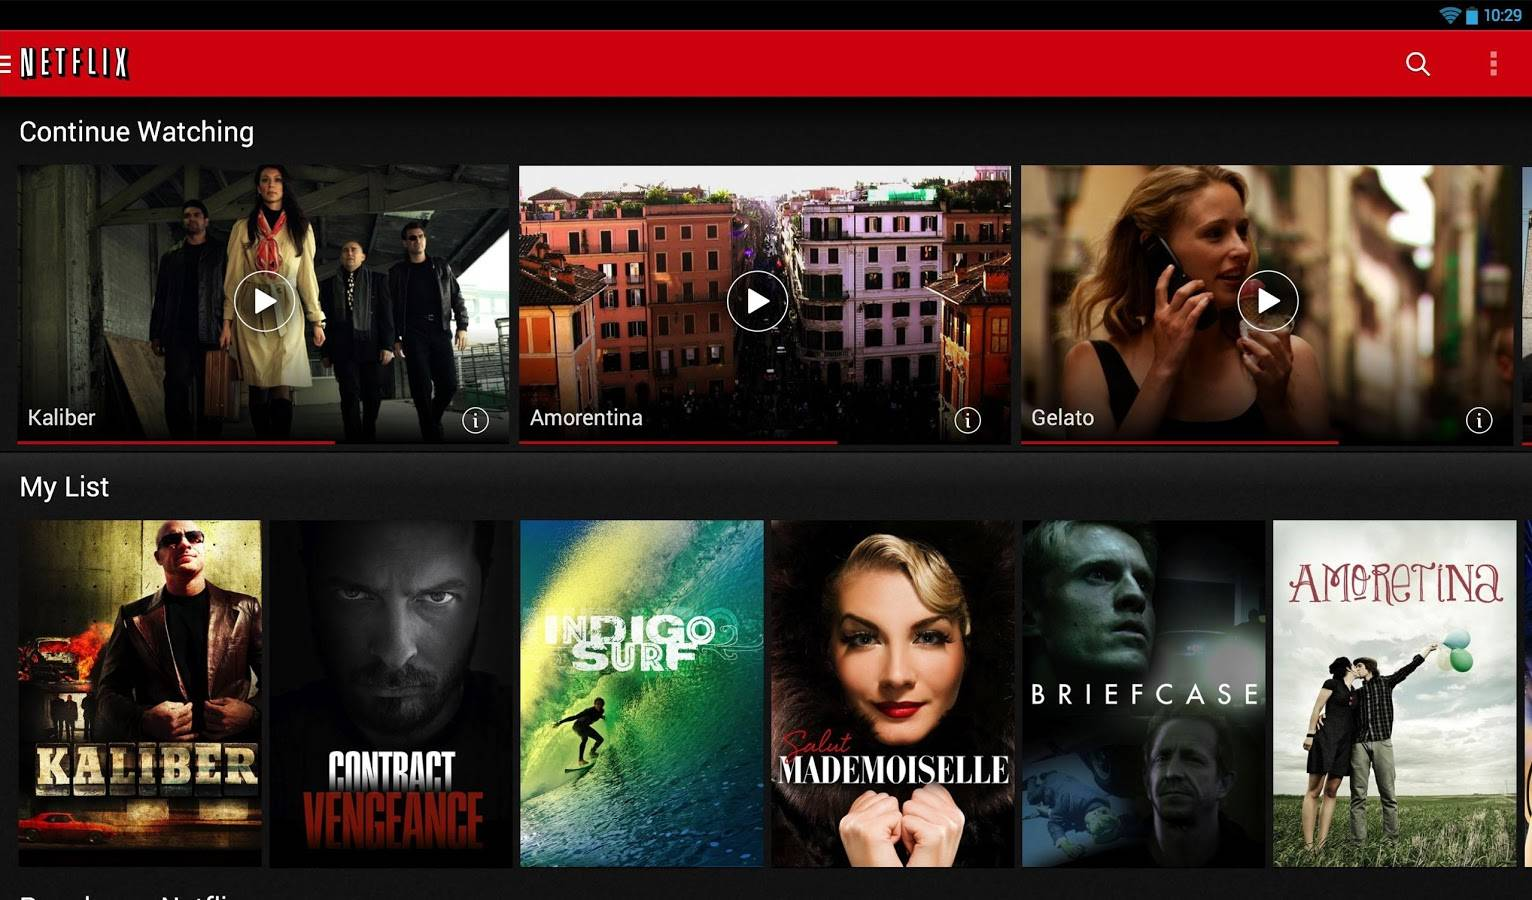 Netflix finally brings streaming profiles to its Android app